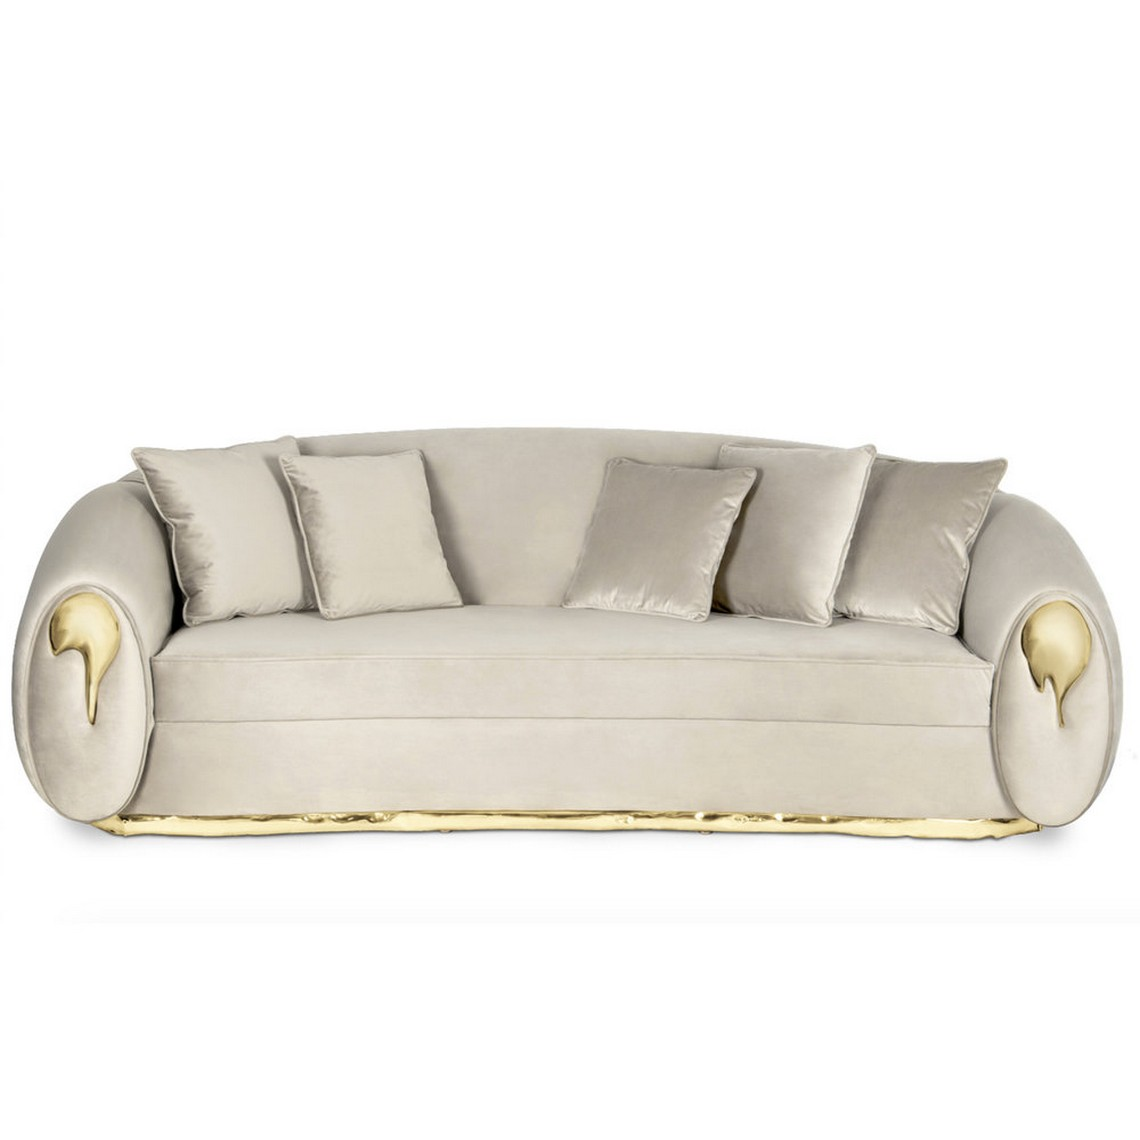 Top Artistic Sofas For Your Living Room artistic sofas Top Artistic Sofas For Your Living Room soleil2 1